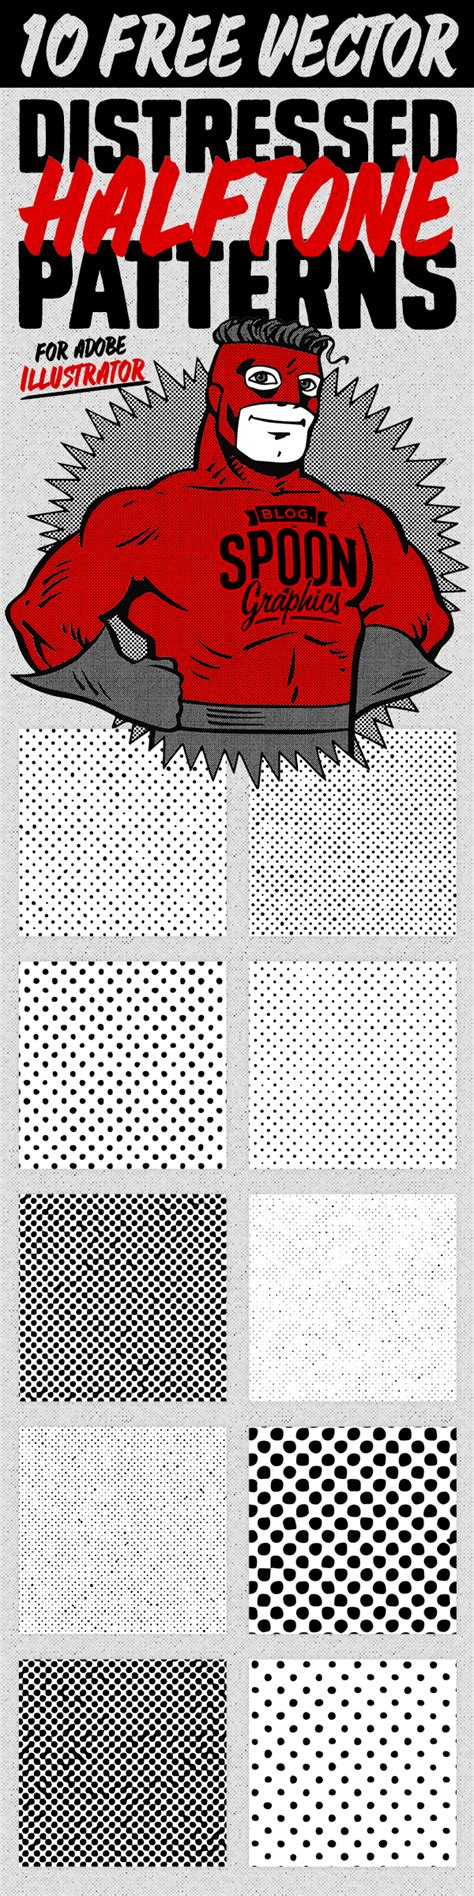 pattern ai use 10 distressed vector halftone patterns for illustrator